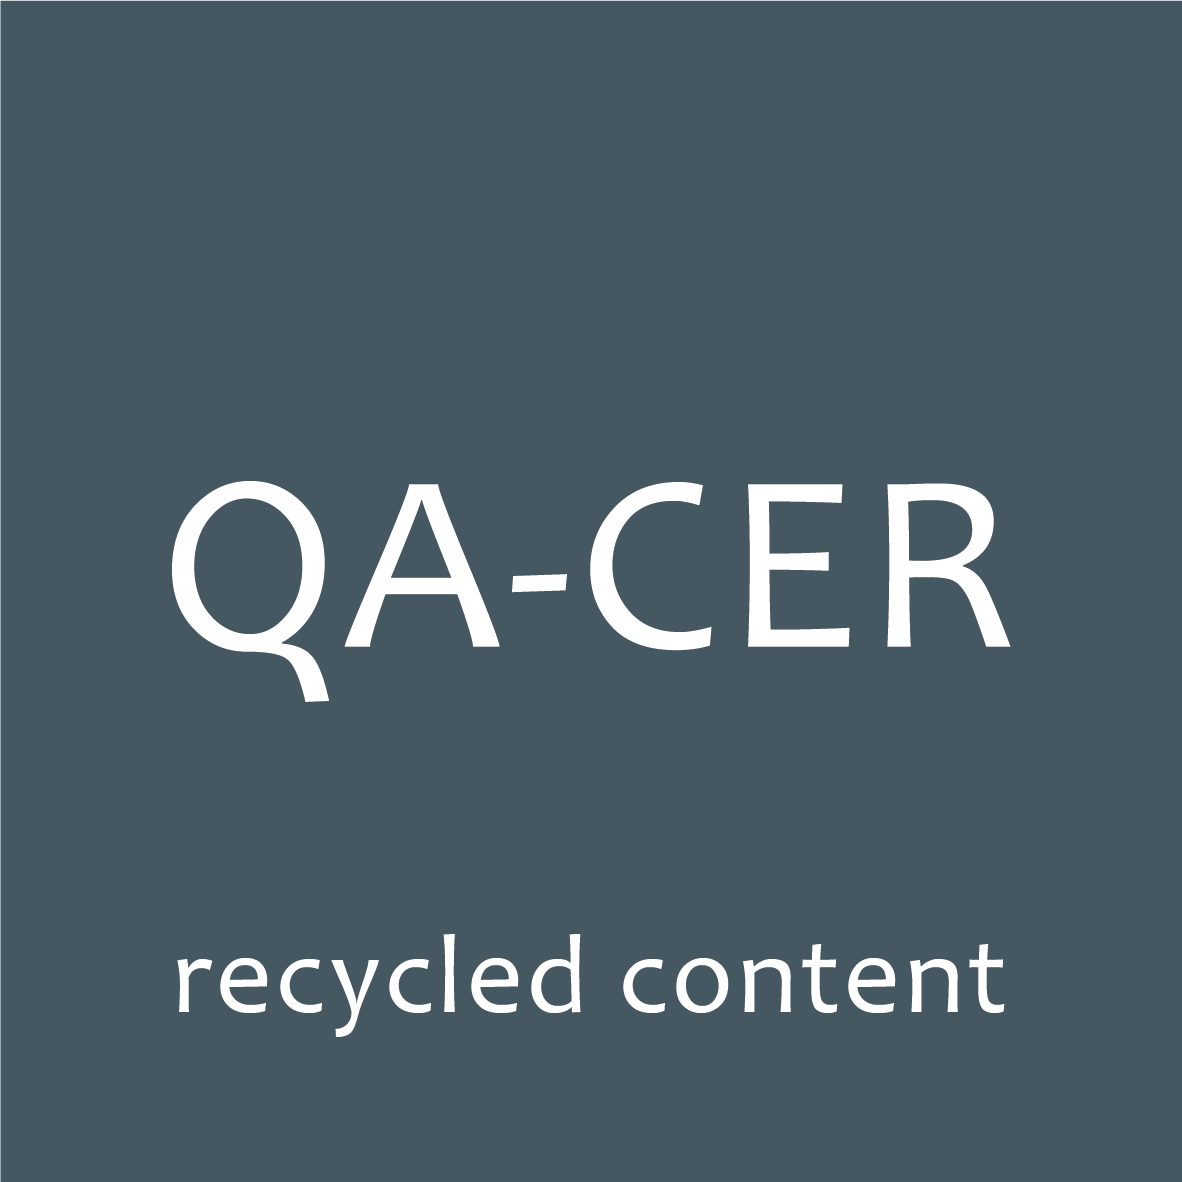 logo qa-cer certified recycled content